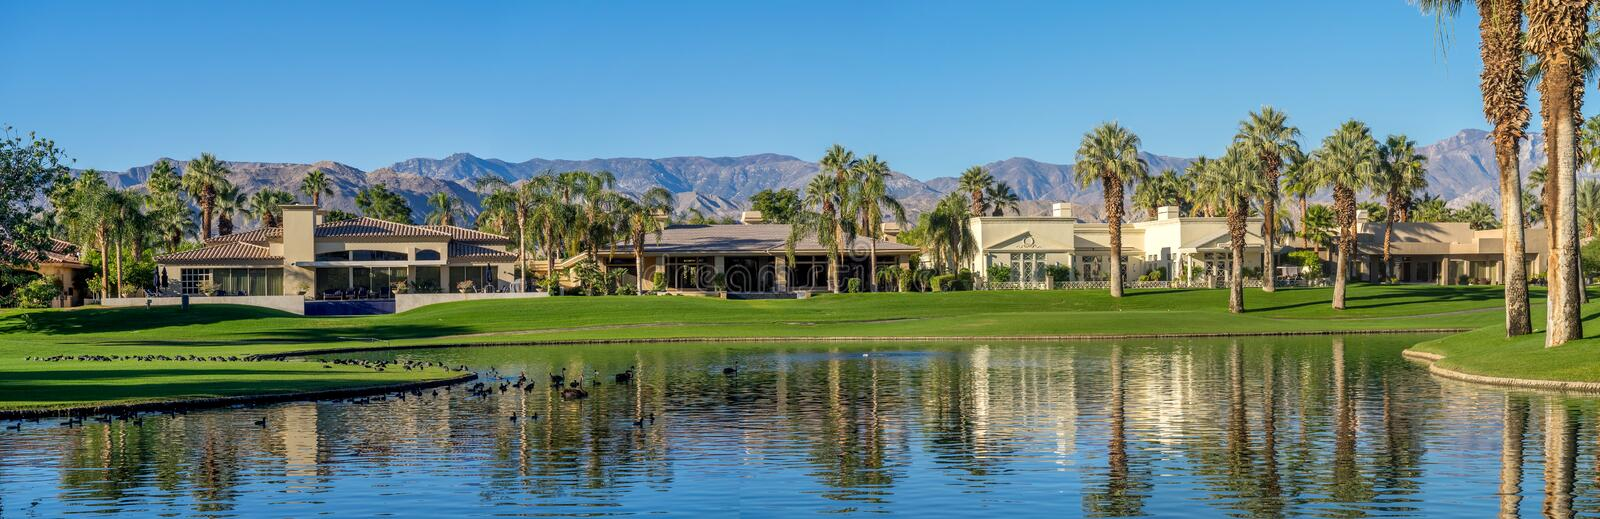 Luxury homes along a golf course in Palm Desert stock photo